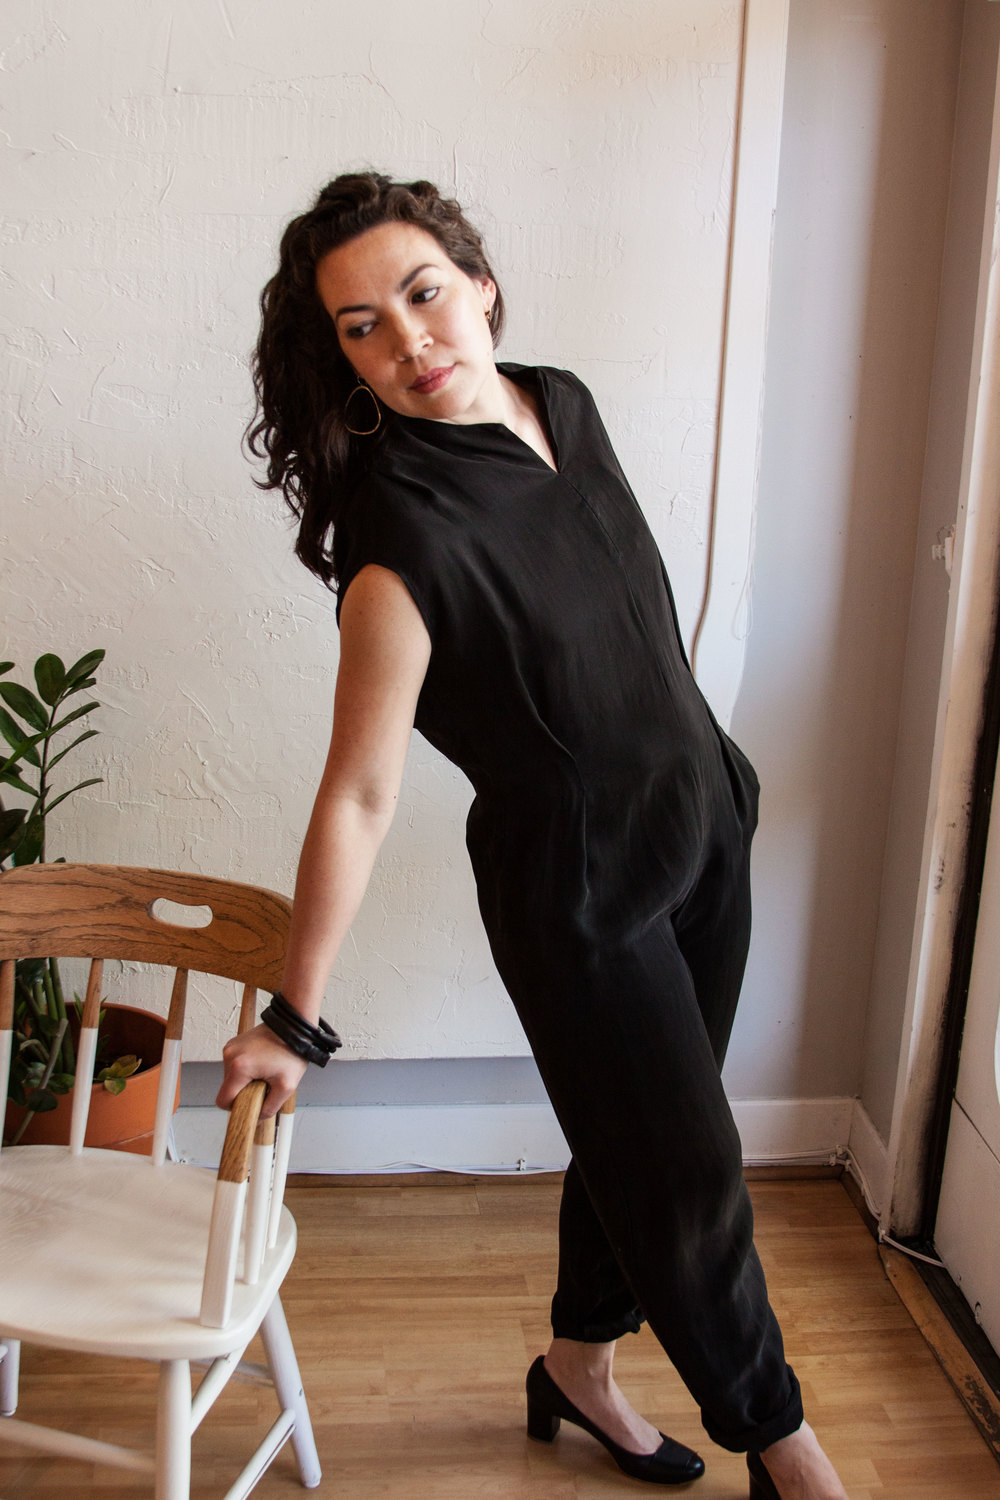 Seriously, you can rock a jumpsuit. You just need the right one for your body type. Look at Chica go! And, it's on sale....